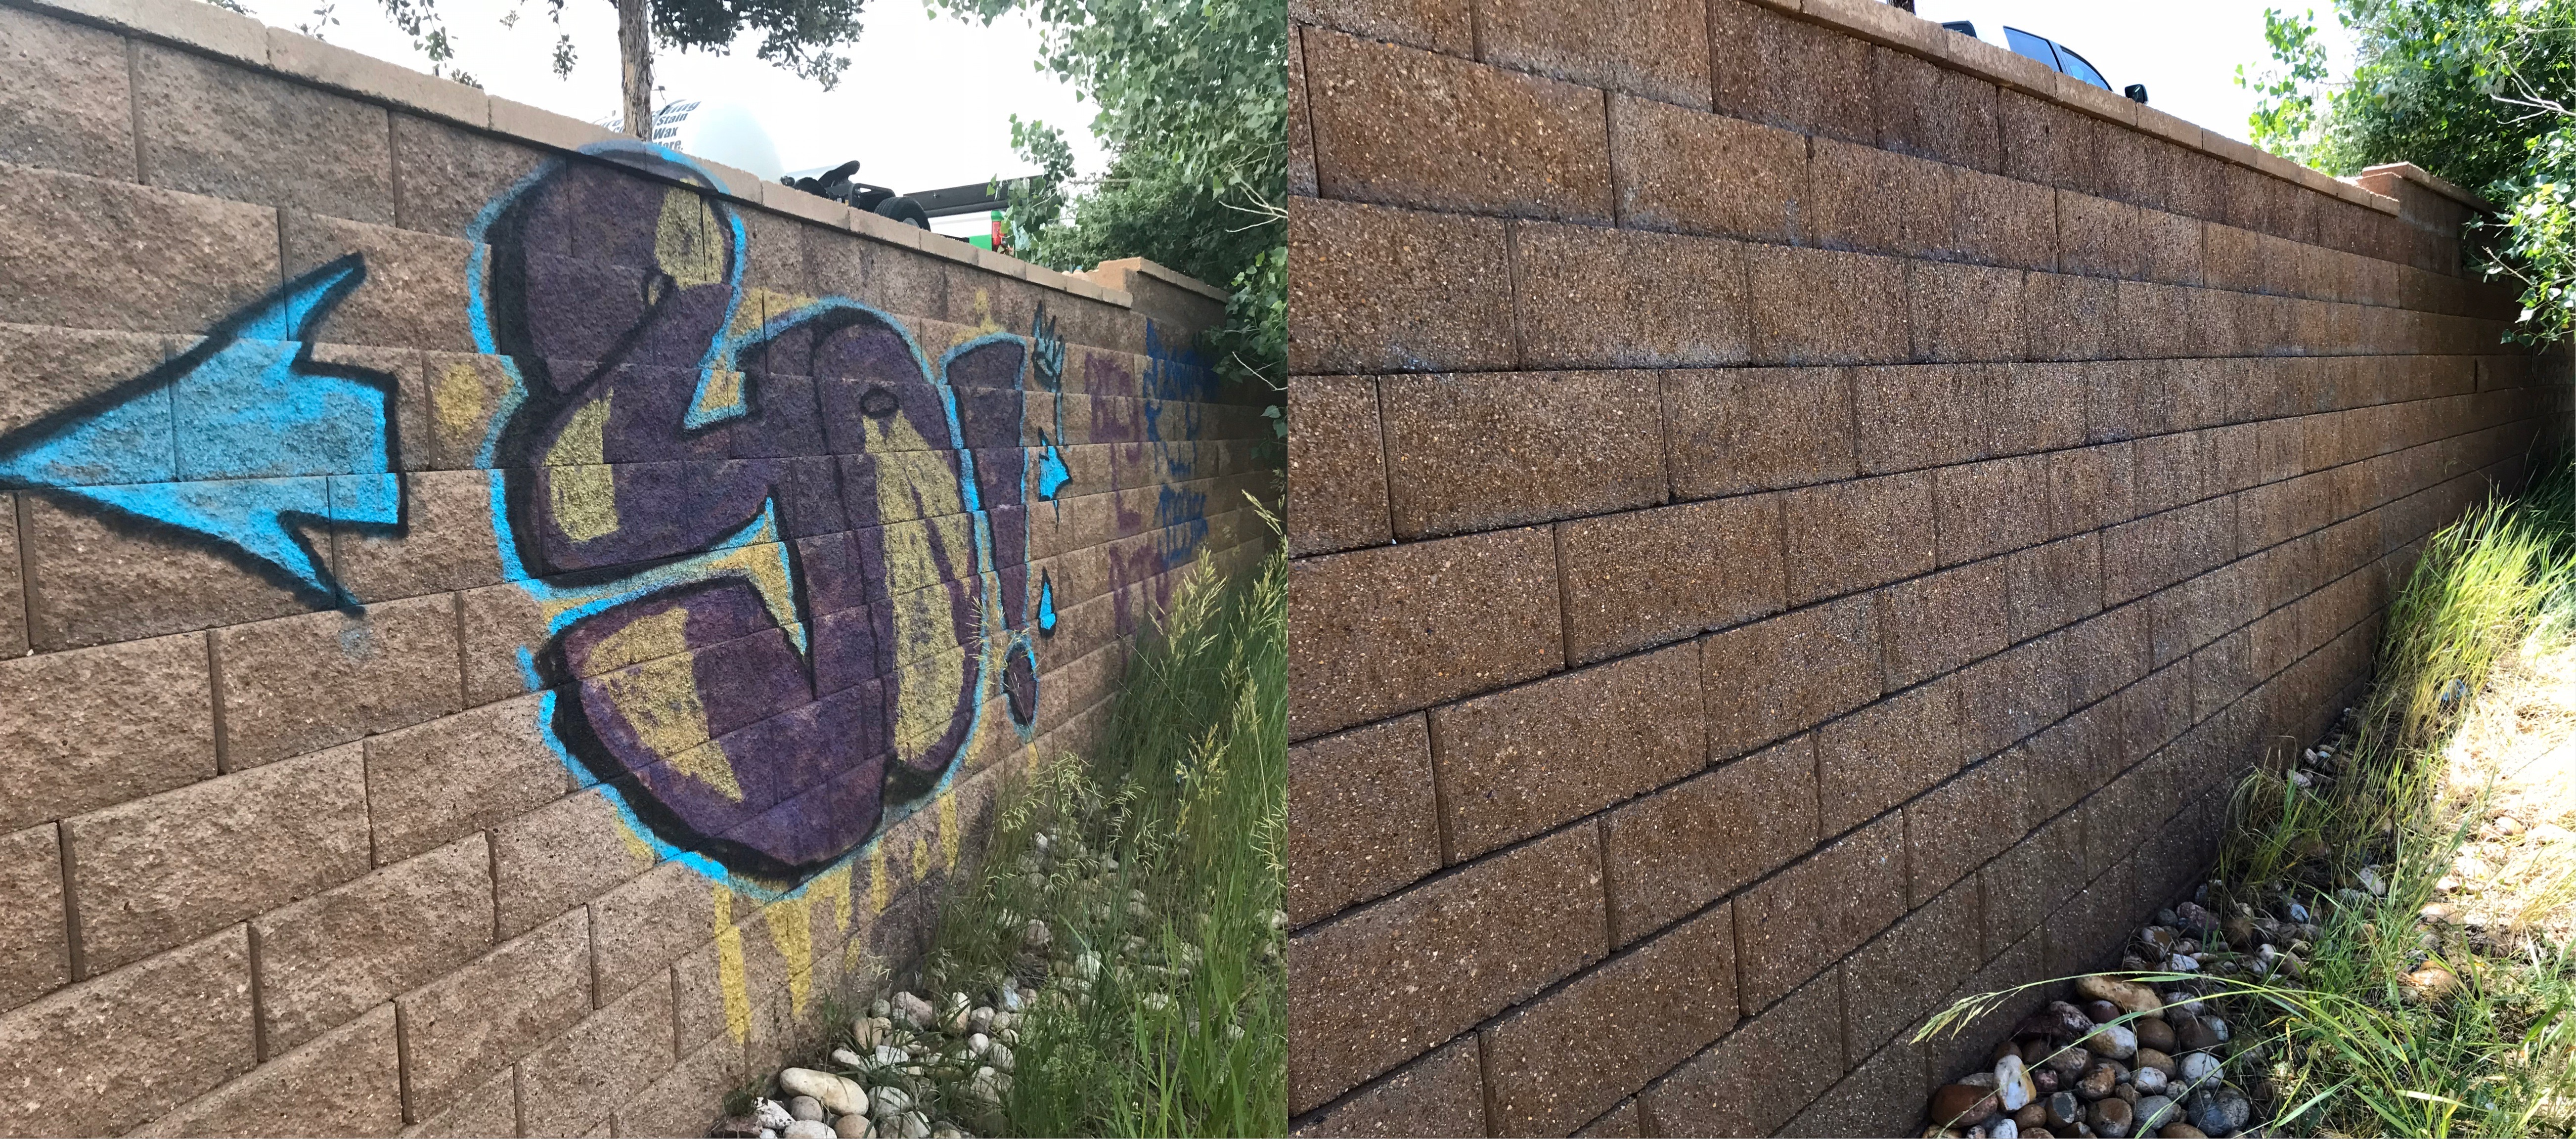 Graffiti Removal Service Areas Include: Fort Collins, Loveland, Windsor, Greeley, Longmont, Berthoud, Estes Park, Wellington, Cheyenne Wyoming